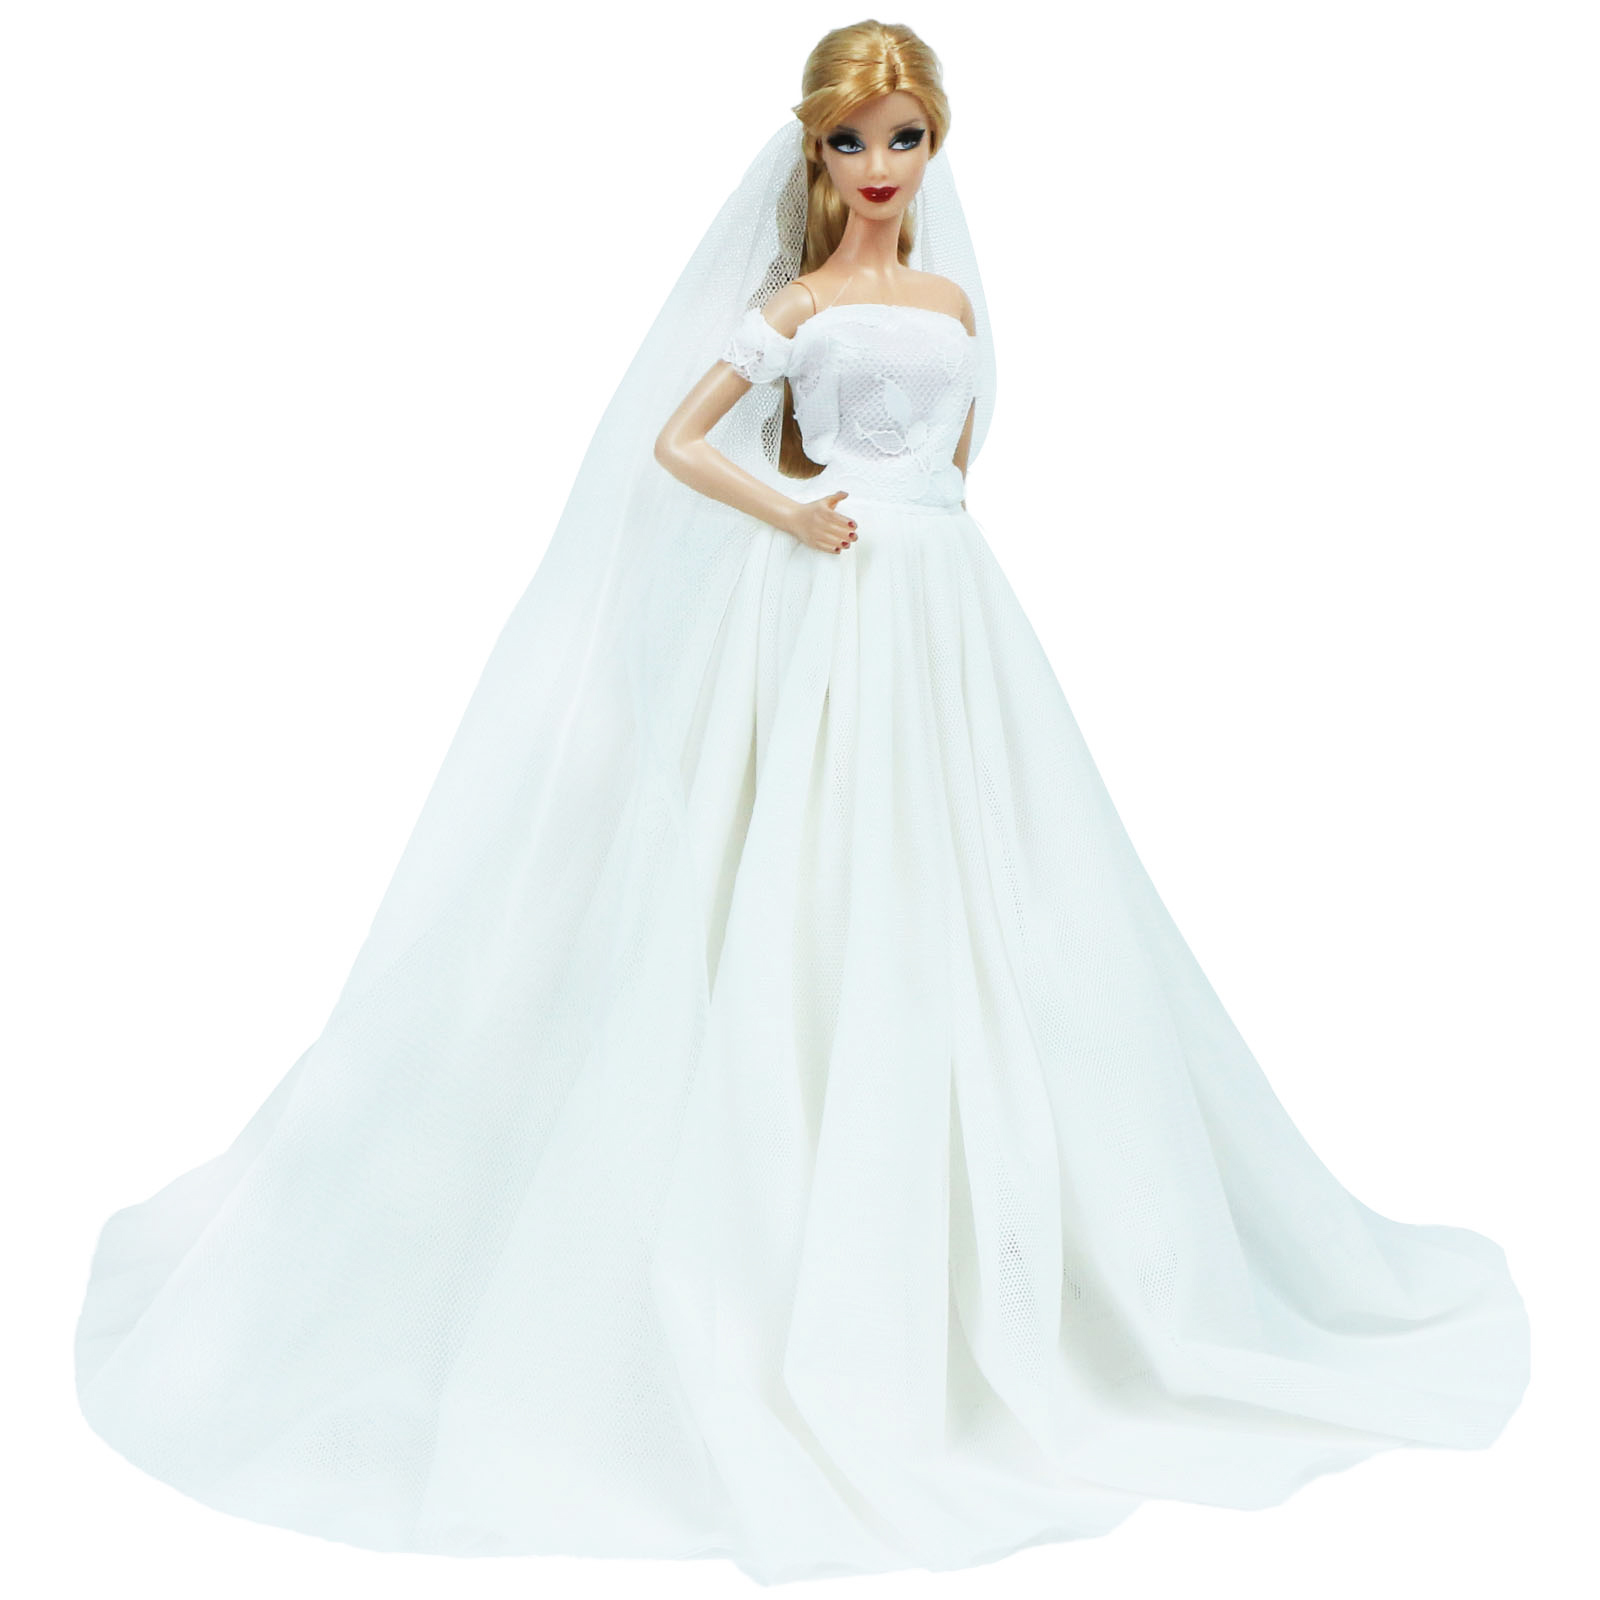 A Wedding Set a Stunning All White Wedding Gown with Veil and Black Tux for Ken